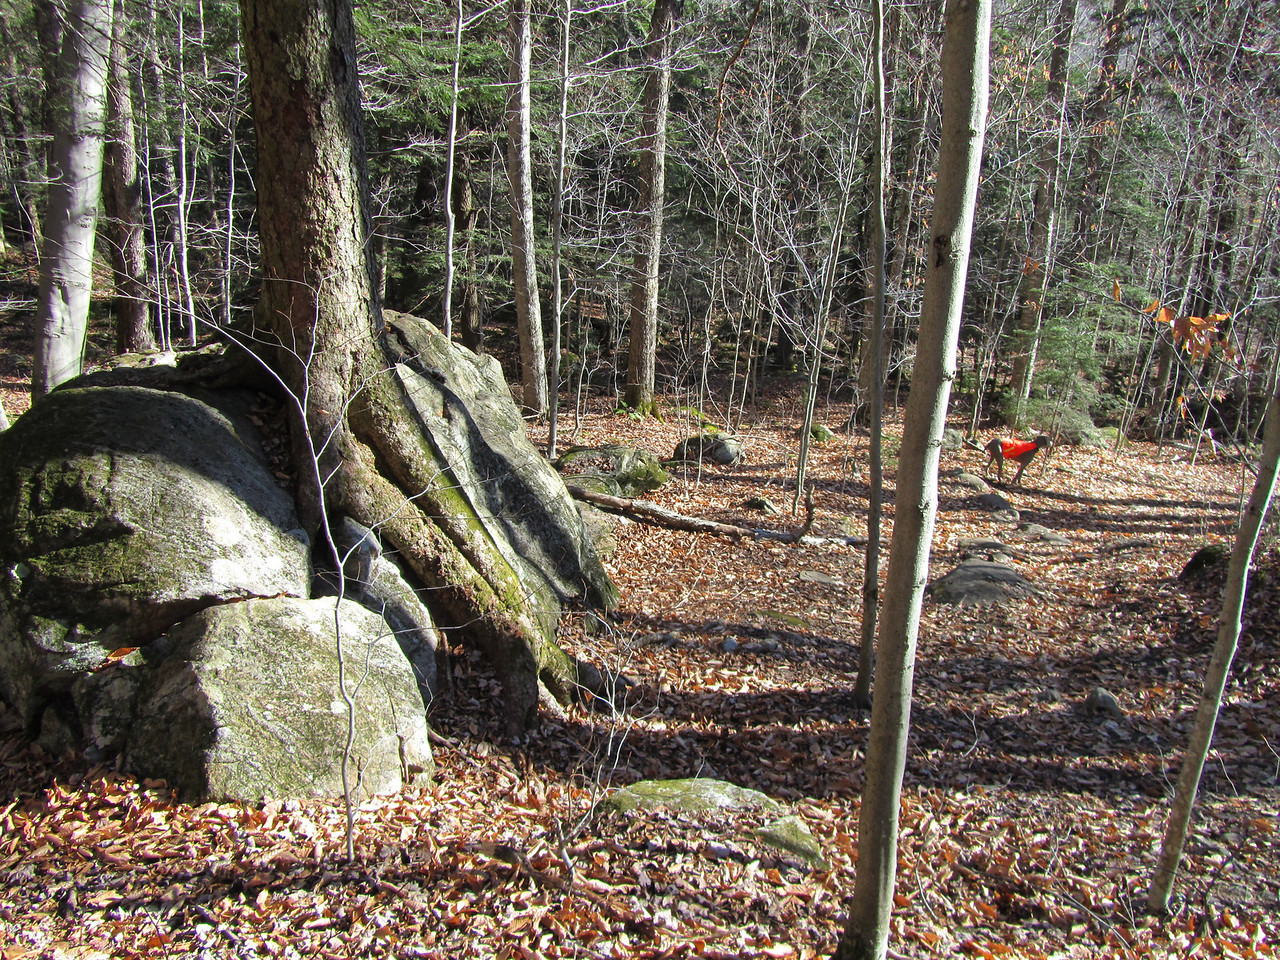 Tree on a rock. Seems to be a common site up north. Still amazing that they can handle high winds. That's it, back at the trail head. Highly recommended family hike with flat rock faces for picnics and great views.